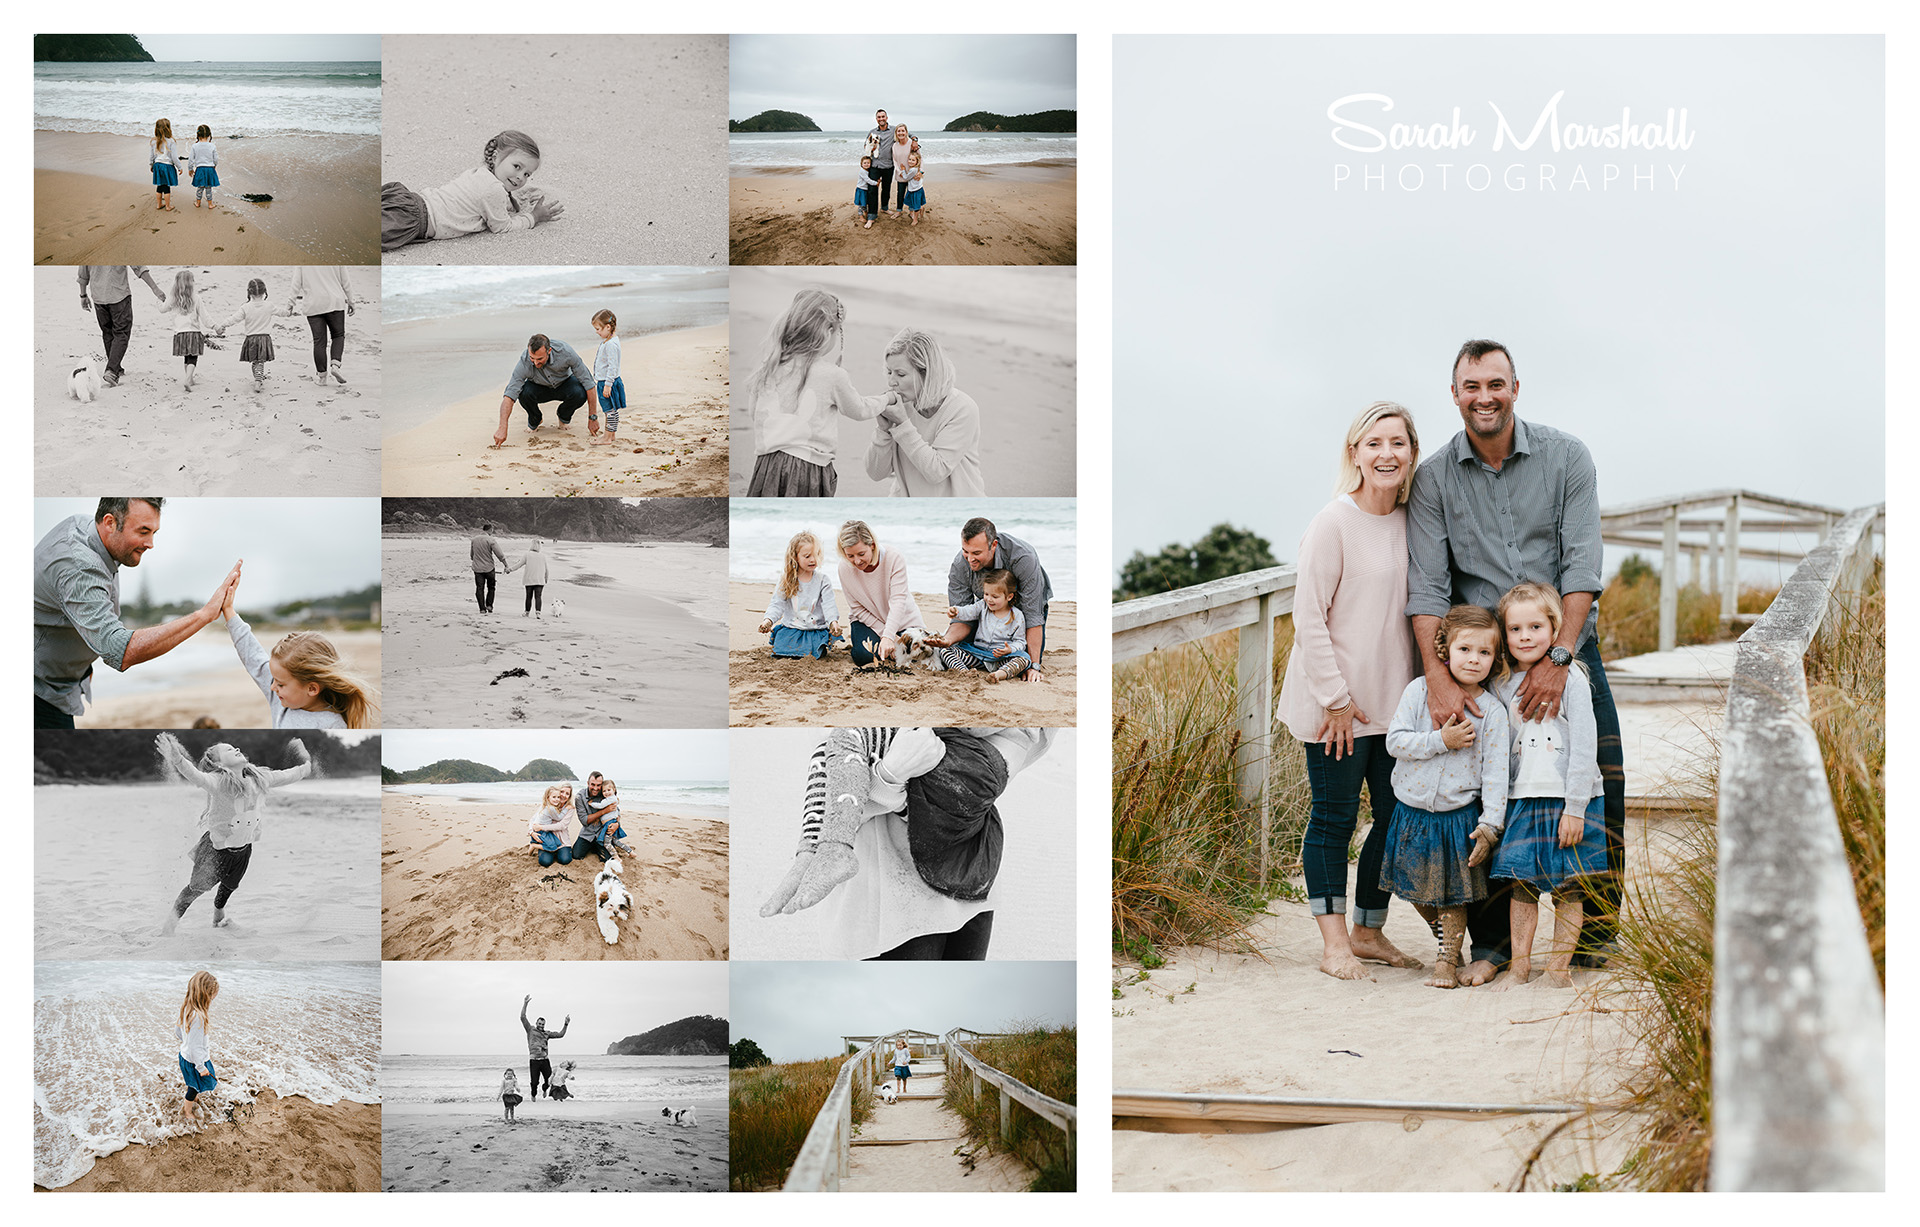 Sarah Marshall Photography Lifestyle Sessions